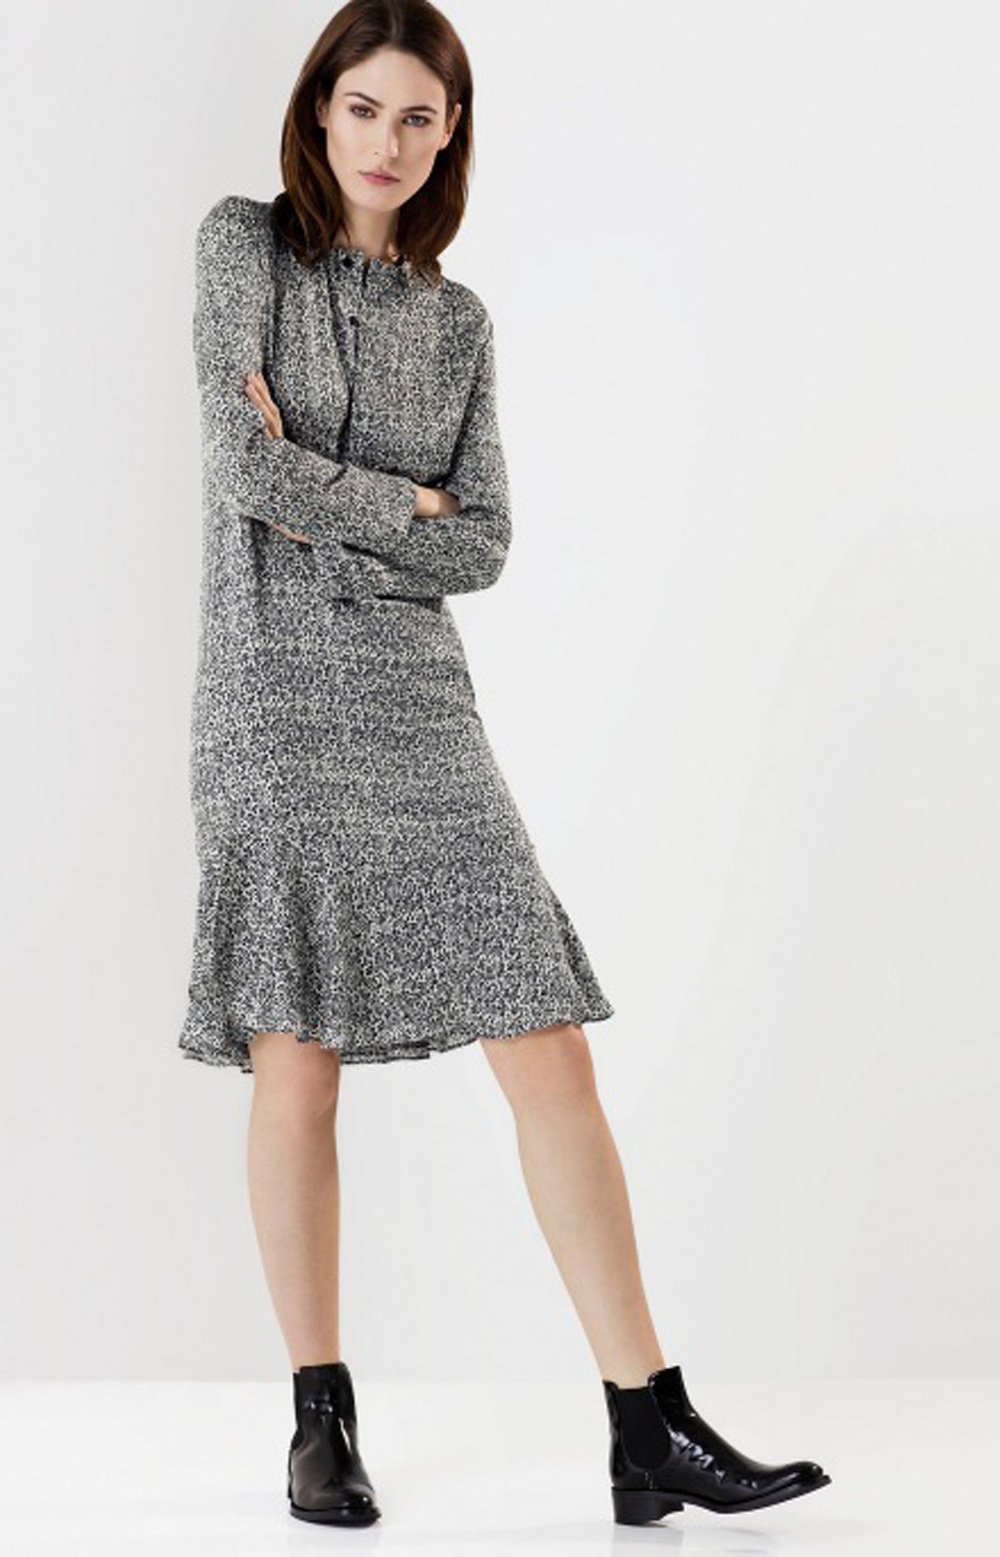 The Outnet £165